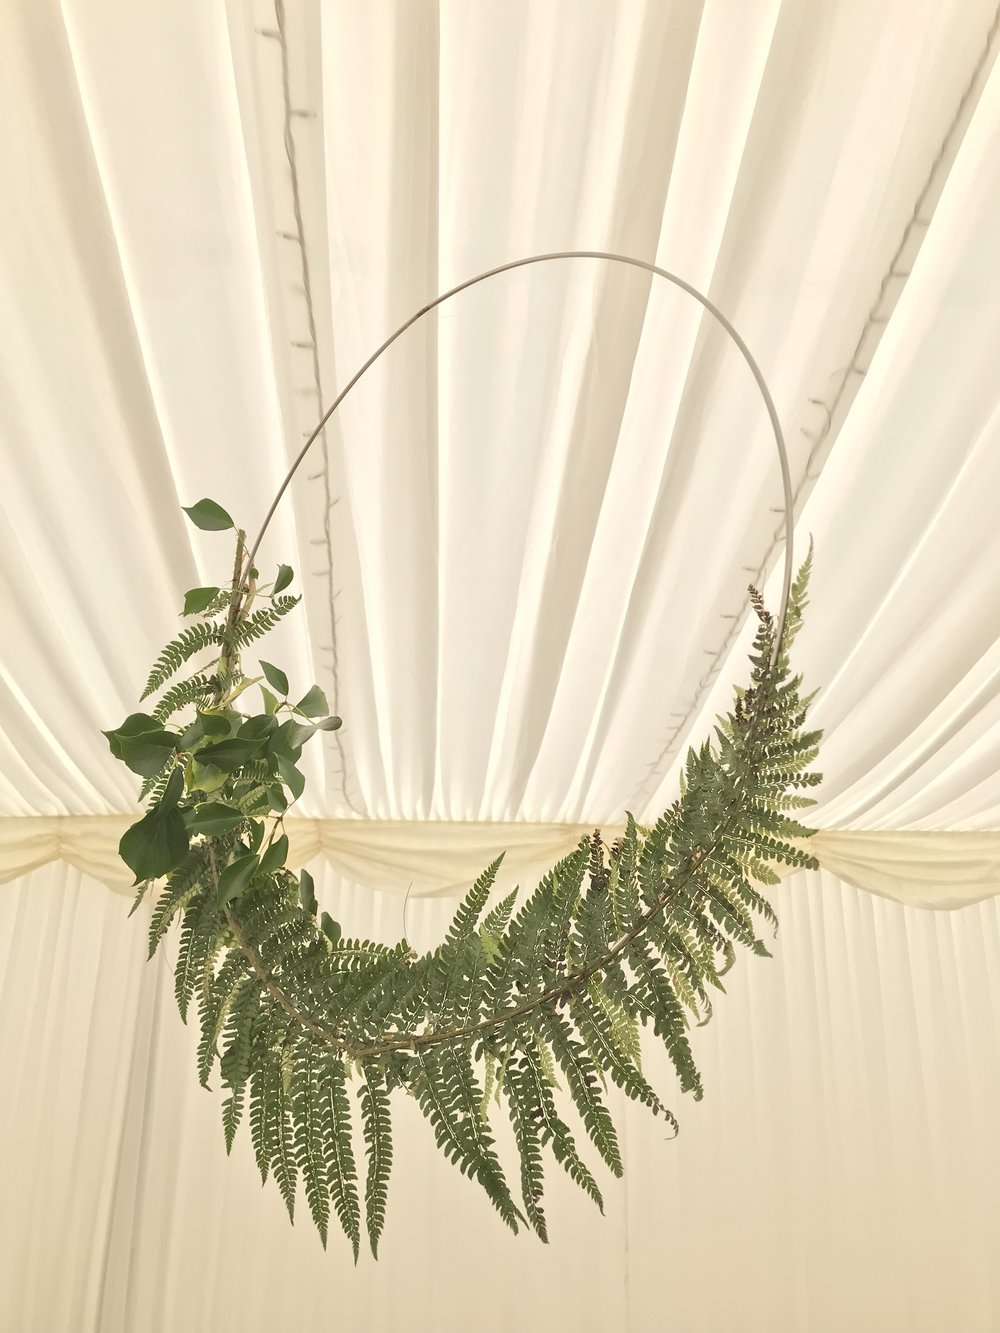 Hanging displays at a wedding.